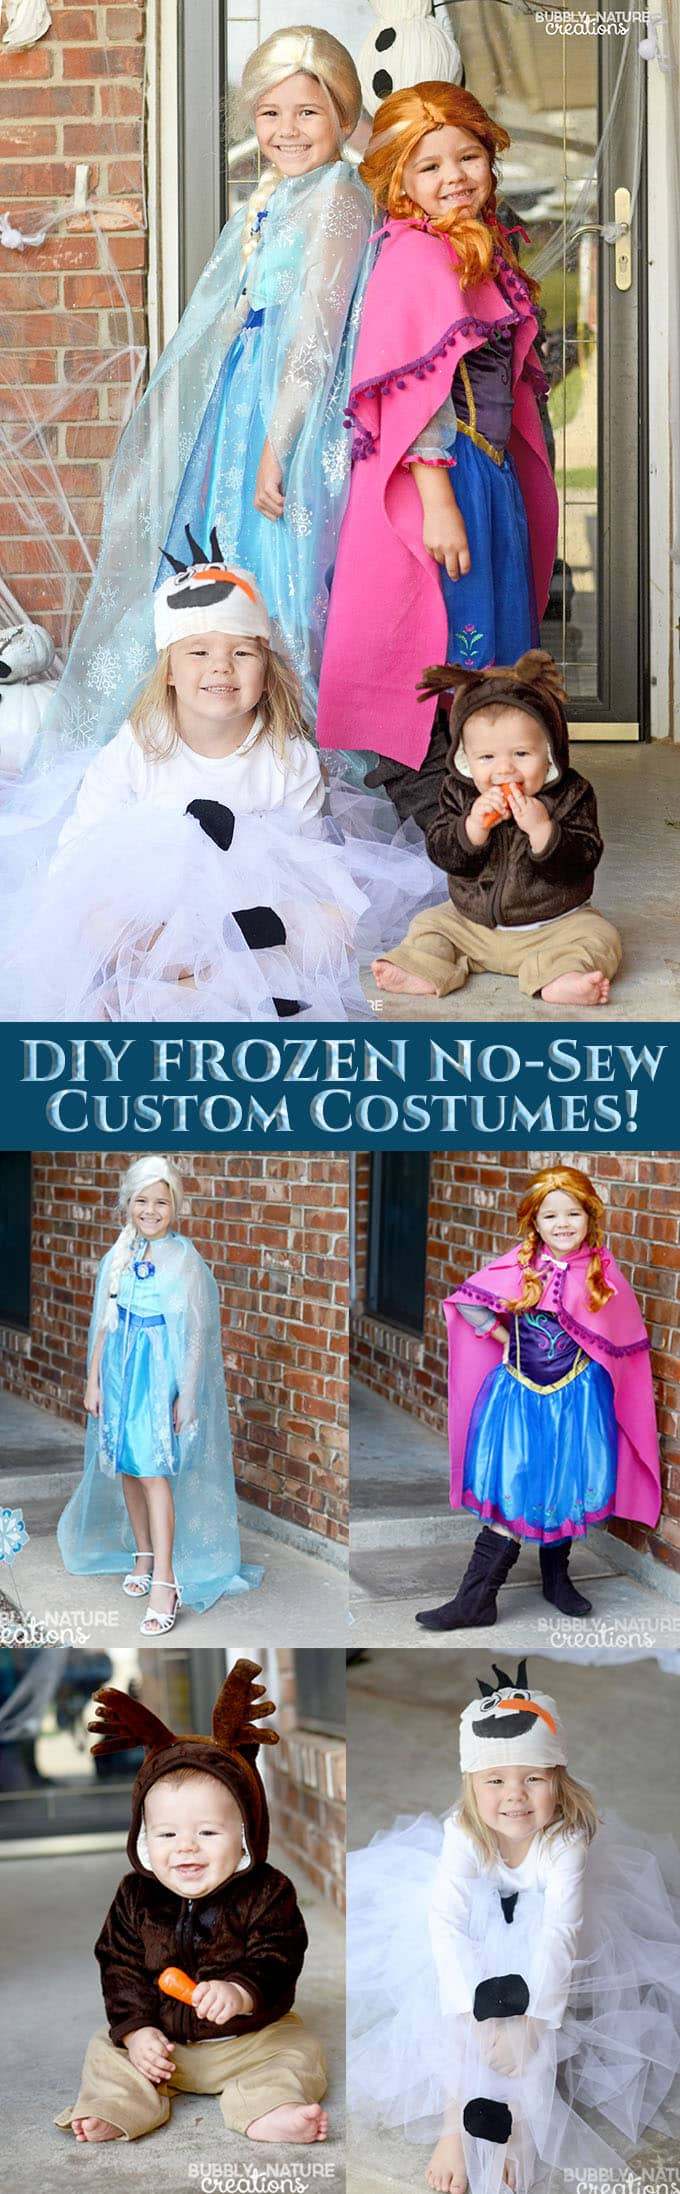 DIY FROZEN No-Sew Custom Costumes!!! It's easy to customize the standard costumes with this no sew tutorial!